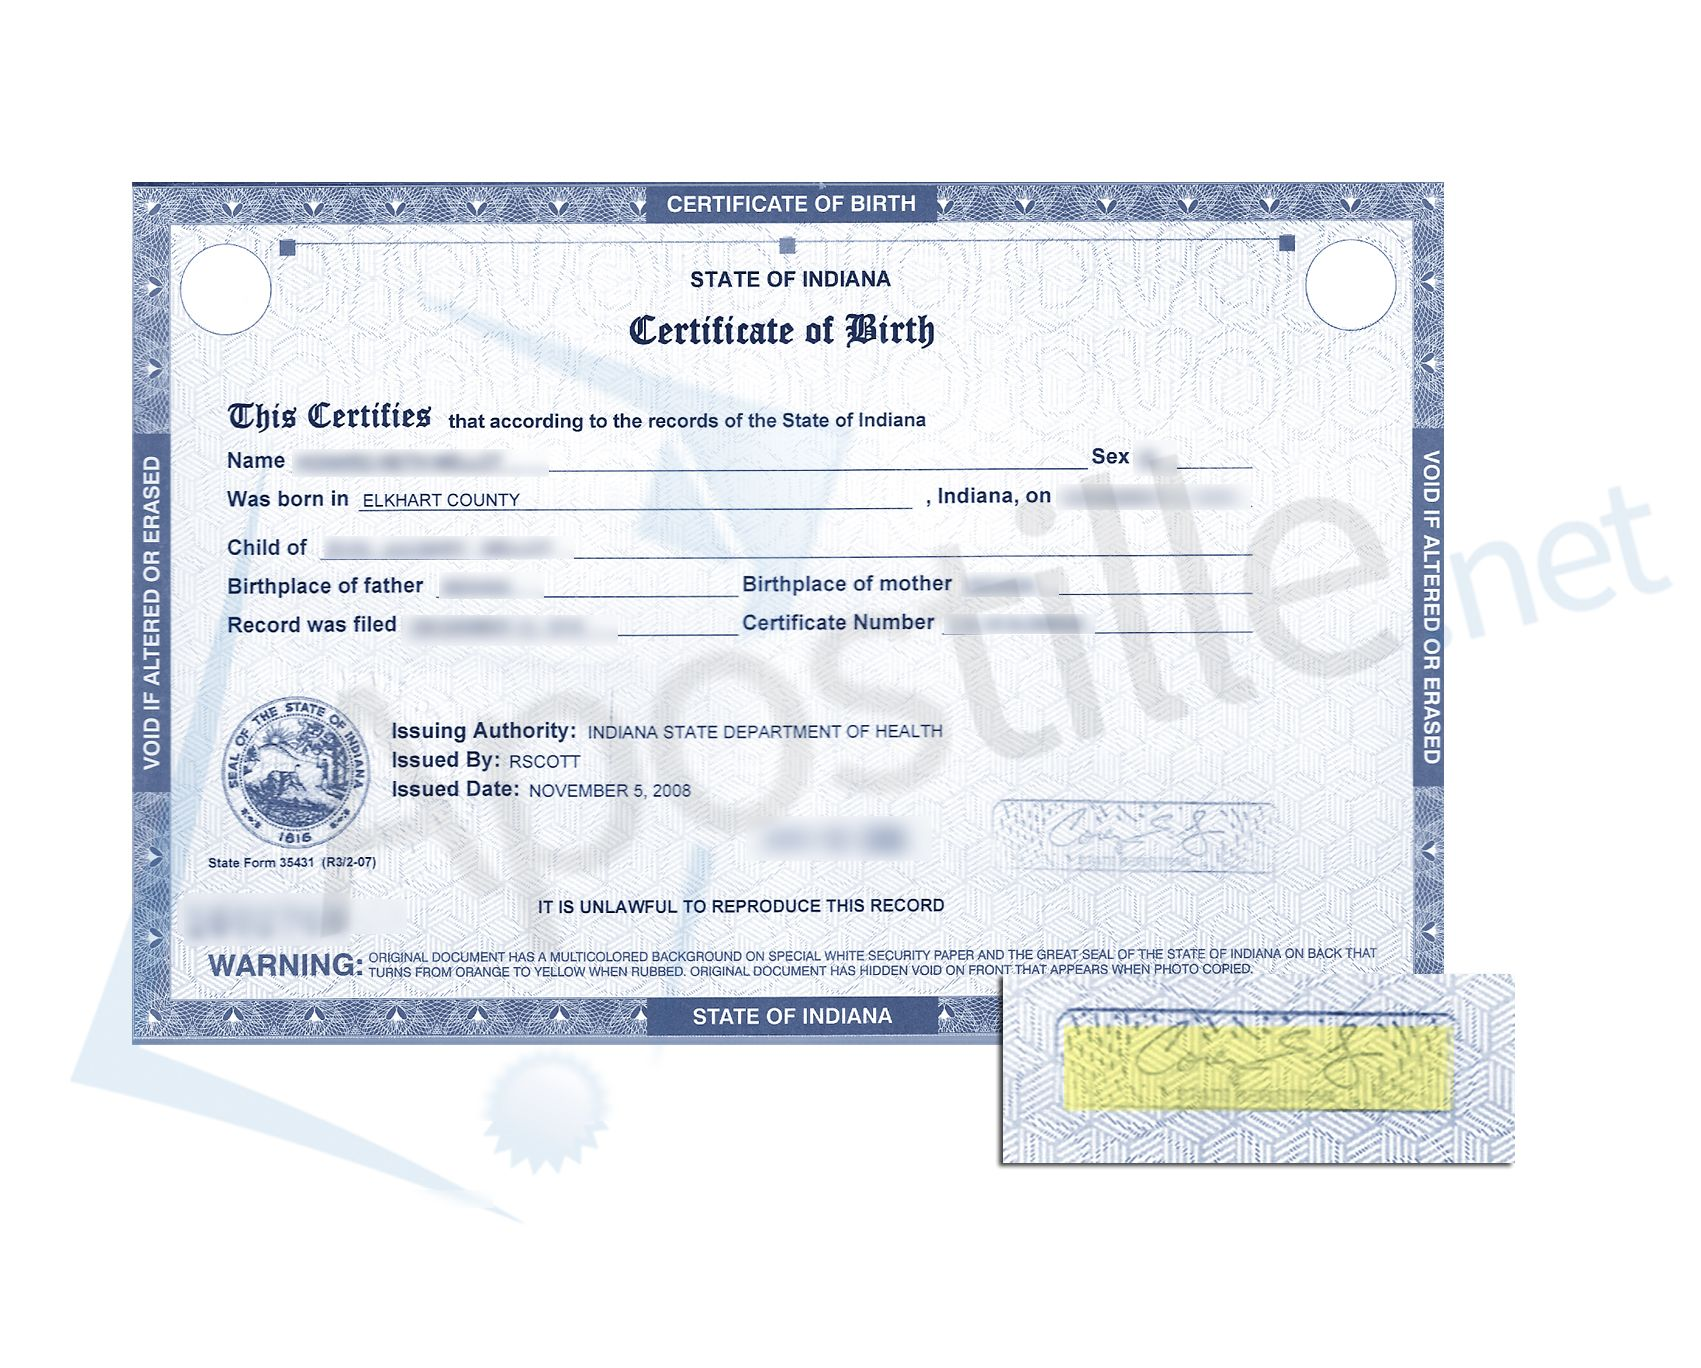 certificate birth indiana state county sample marion health elkhart signed apostille officer resume indianapolis issued calligraphy lettering bullet journal vital